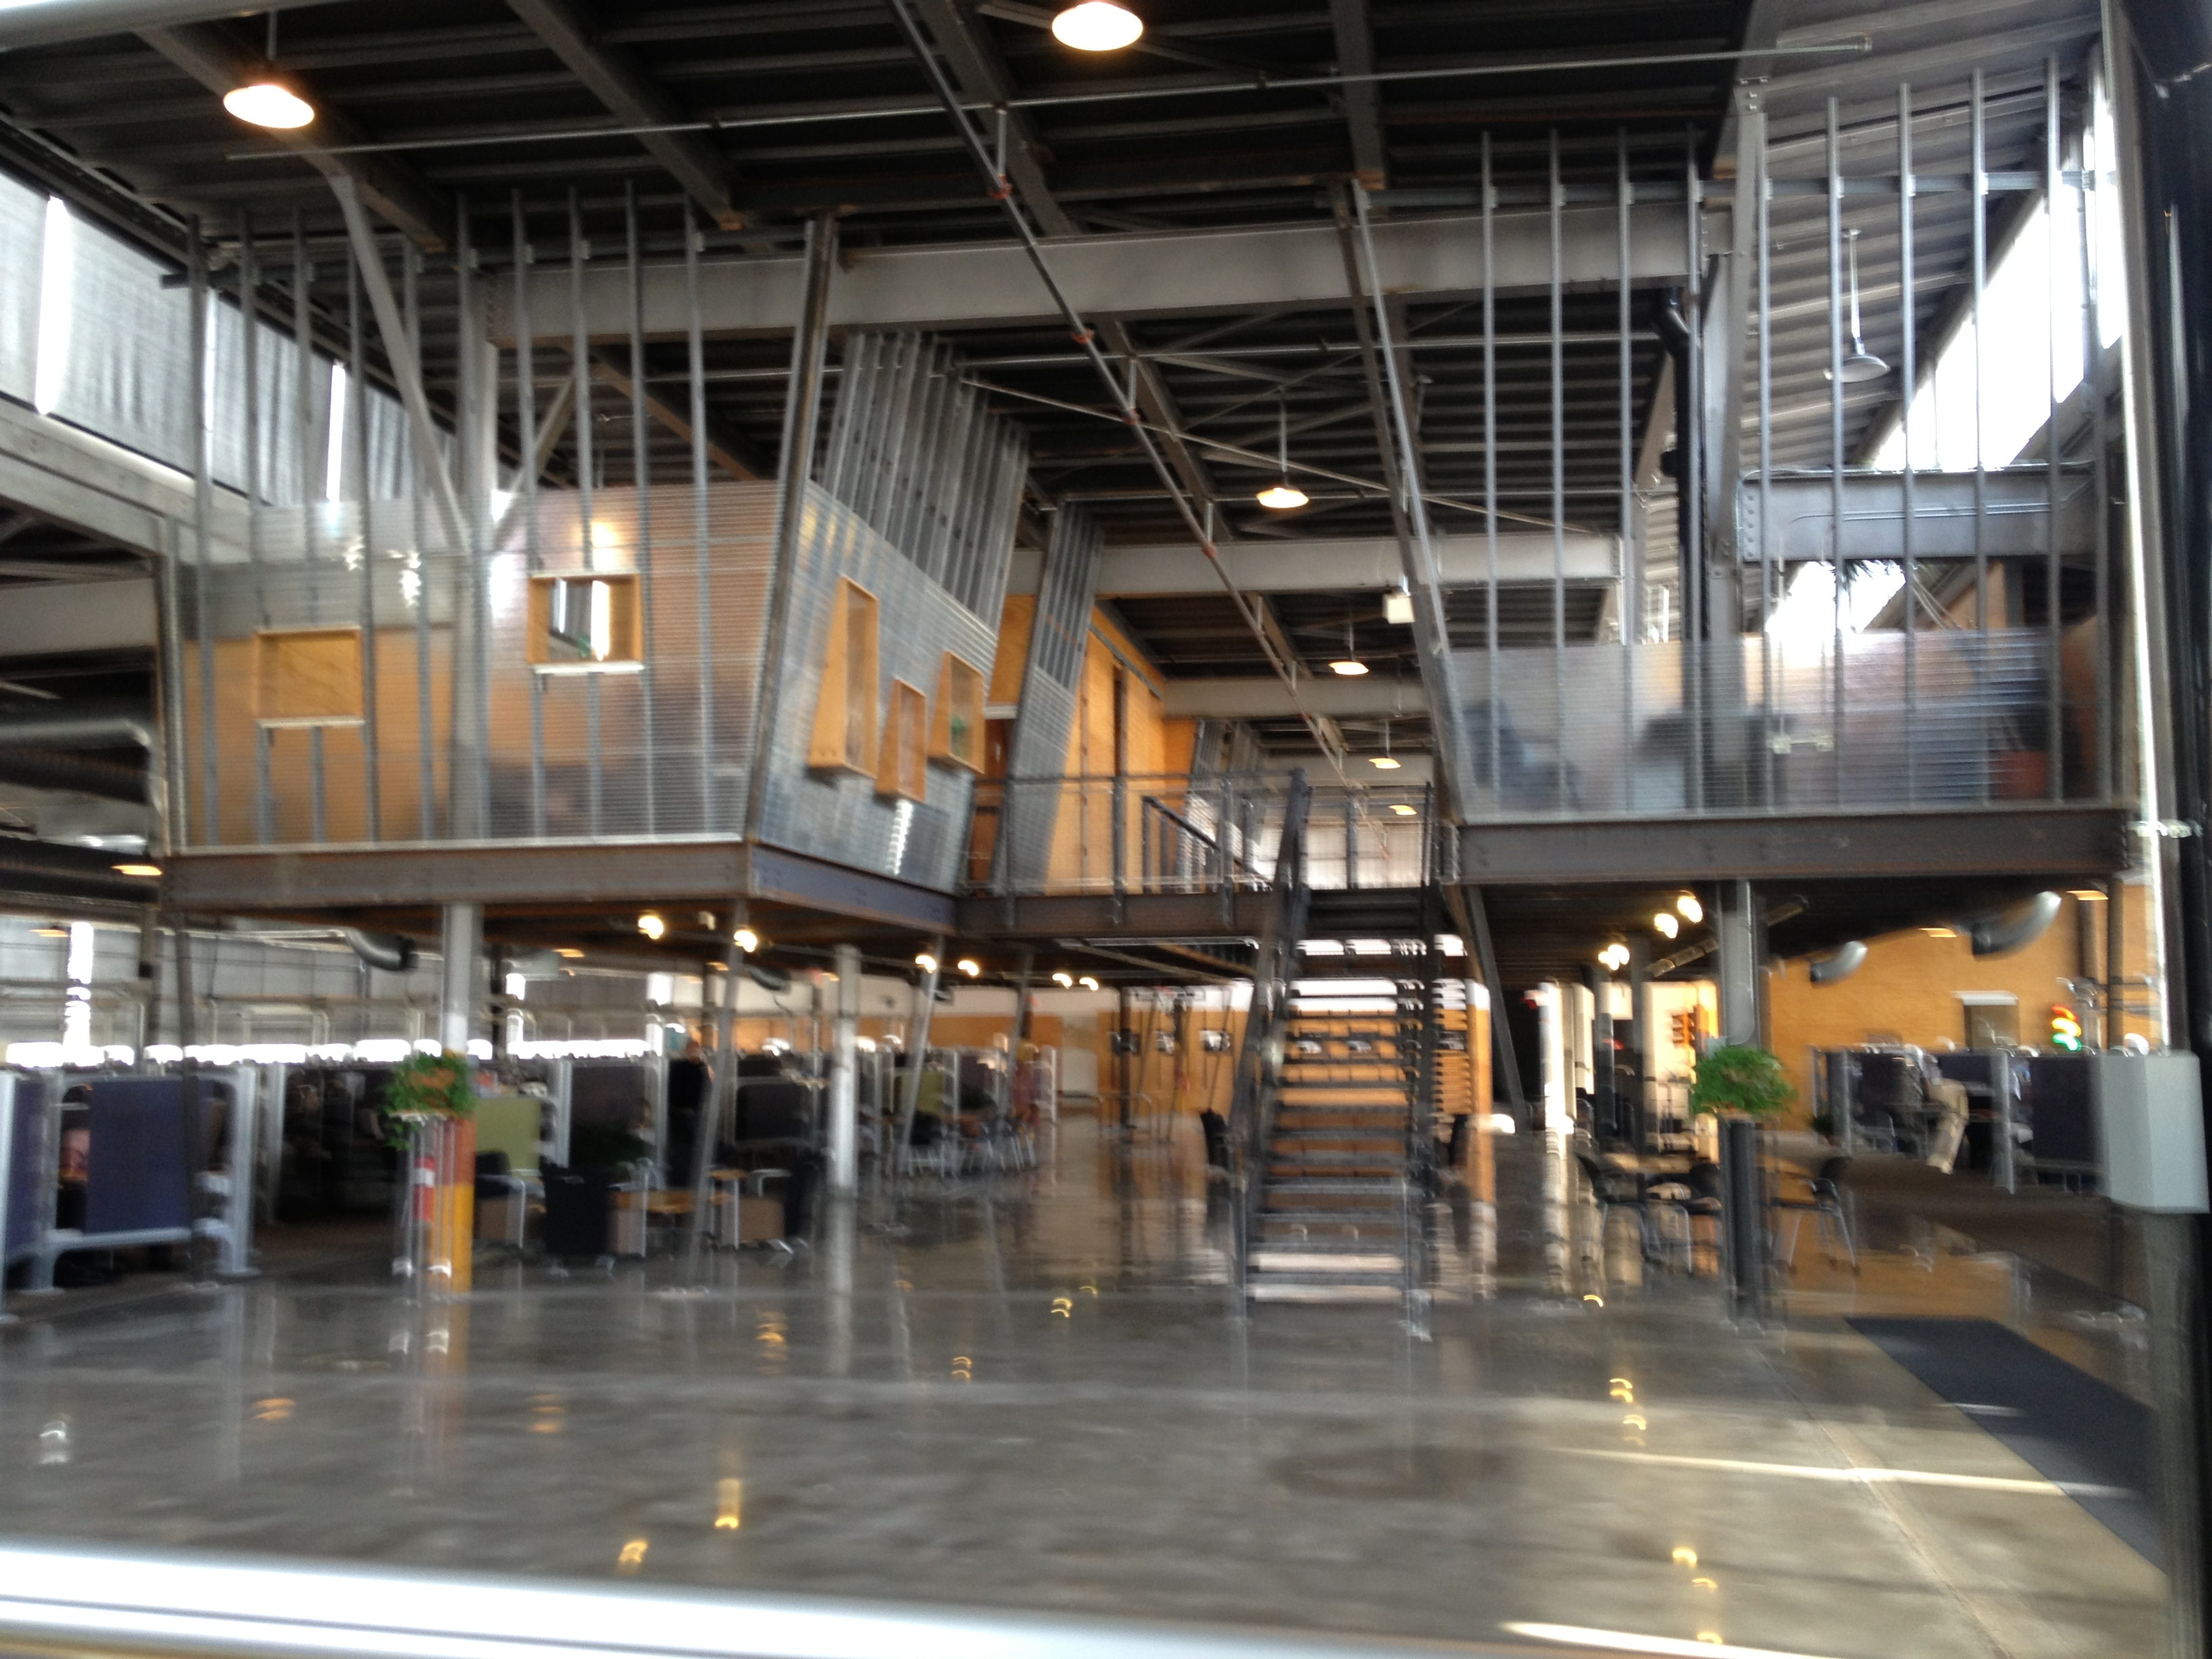 Converted Warehouse touring two rivers marketing | iowa prssa